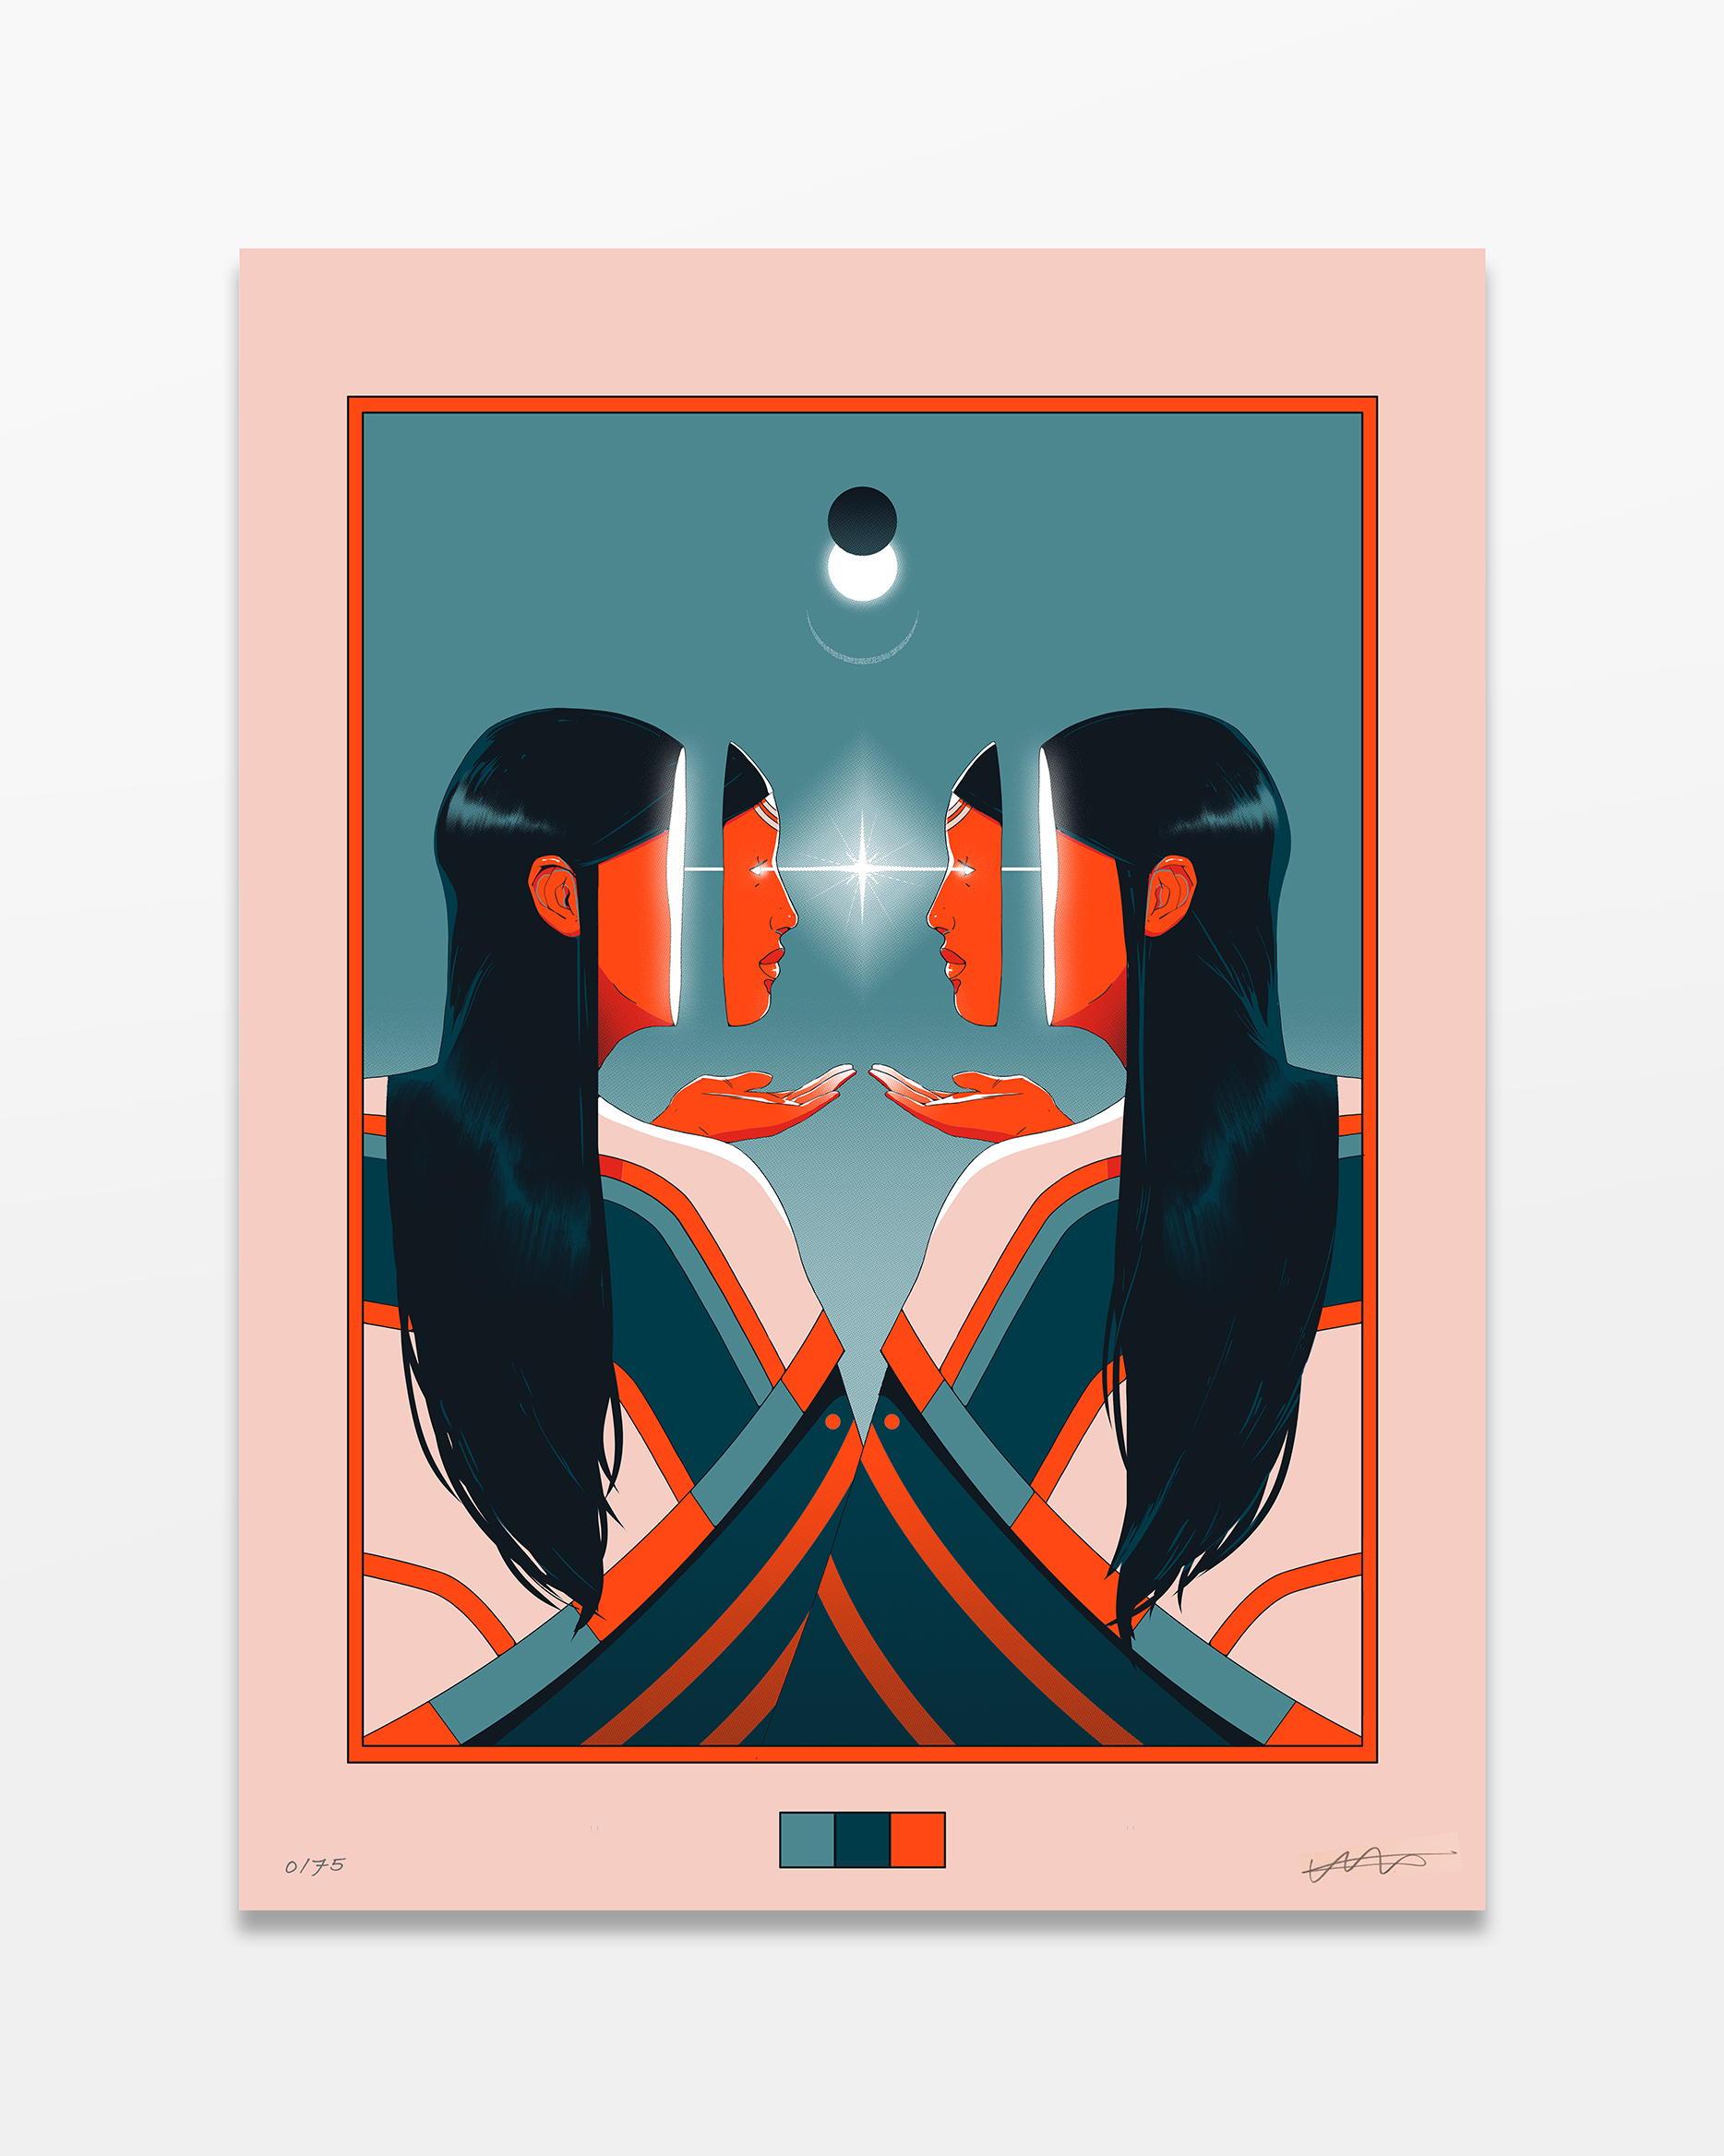 1_Victor Mosquera Screen Prints Product Shot_v2.jpg